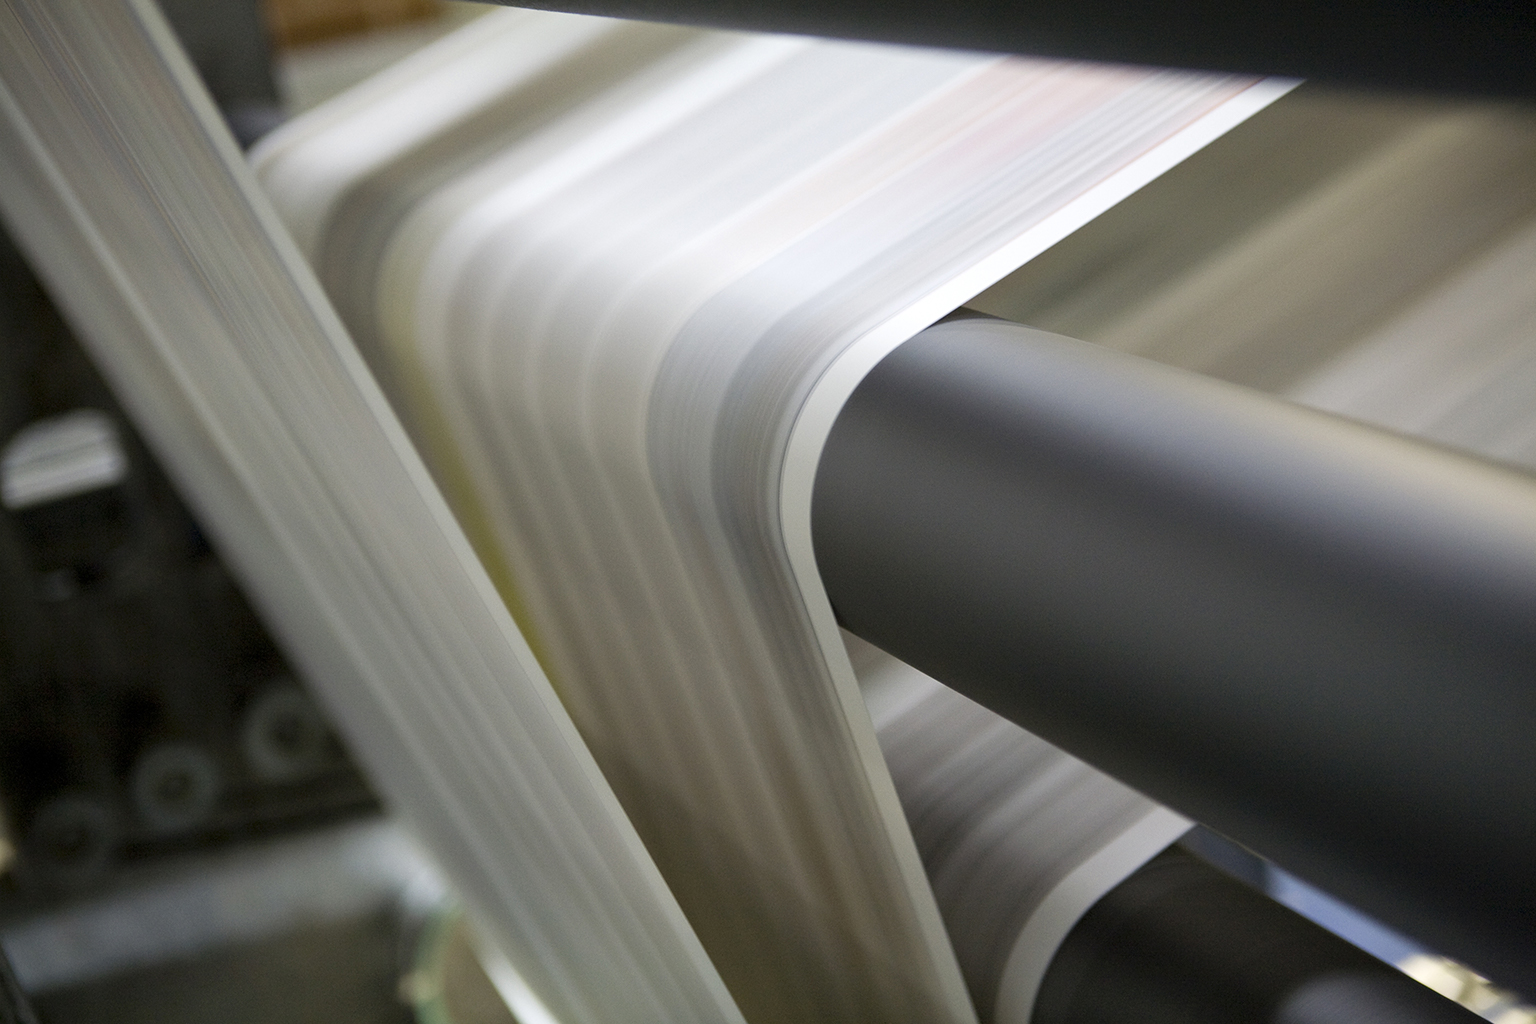 Paper travelling through print machine rollers at speed.